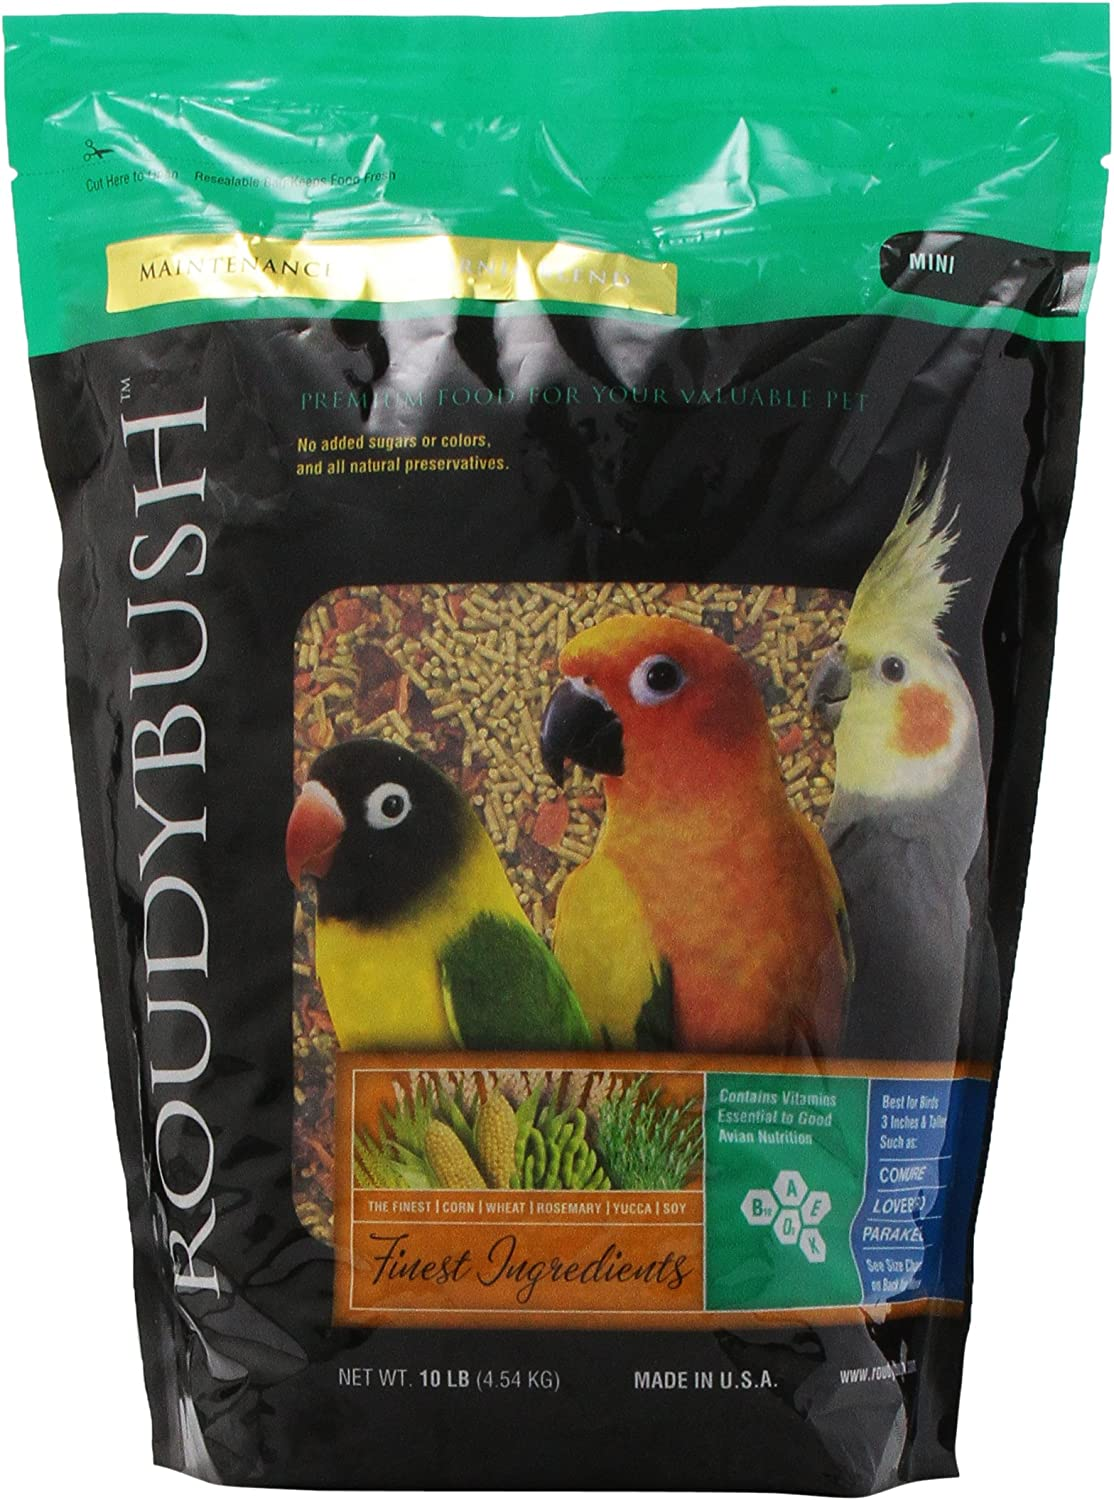 RoudyBush California Blend Bird Food, Mini, 10-Pound